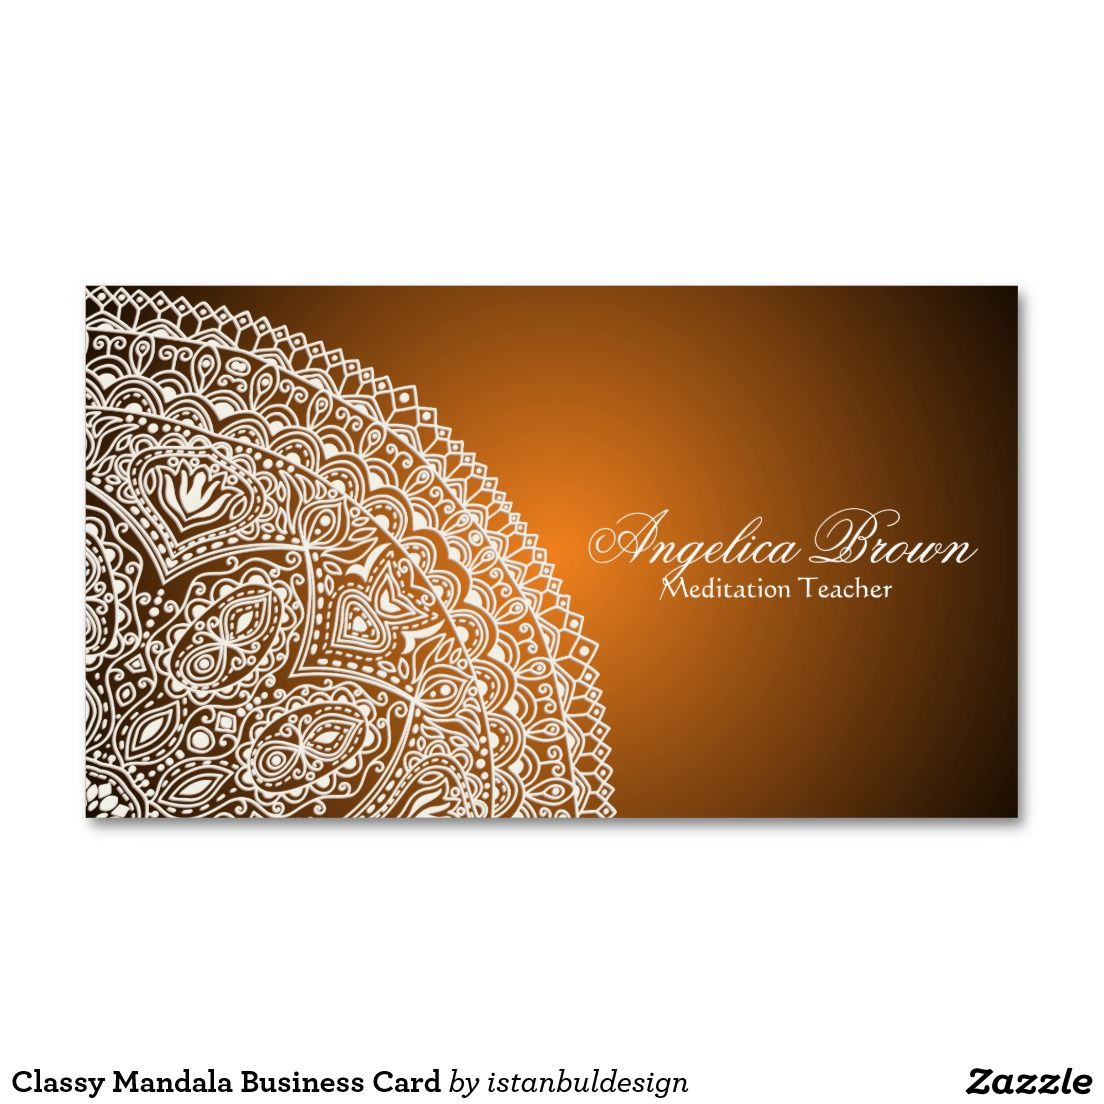 Classy mandala business card meditation business cards pinterest classy mandala business card reheart Image collections